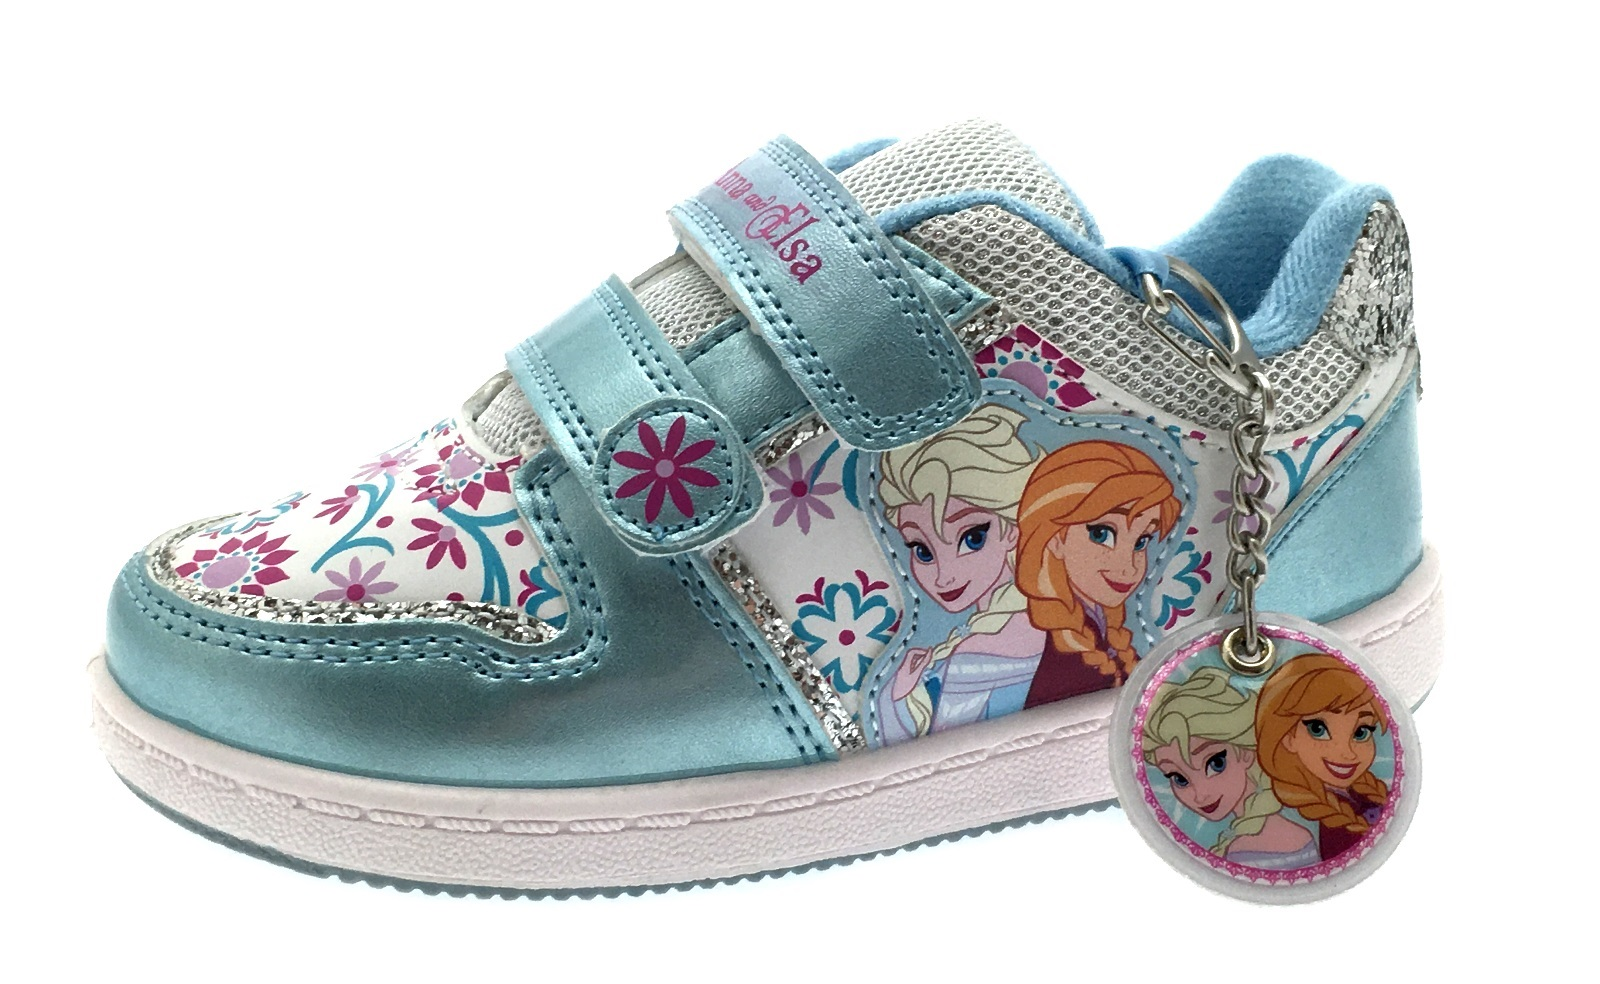 Focusing on Shoes Kids Frozen available for sale now. This site has searched far and wide for a big assortment at the best prices. Find your Shoes Kids Frozen now.